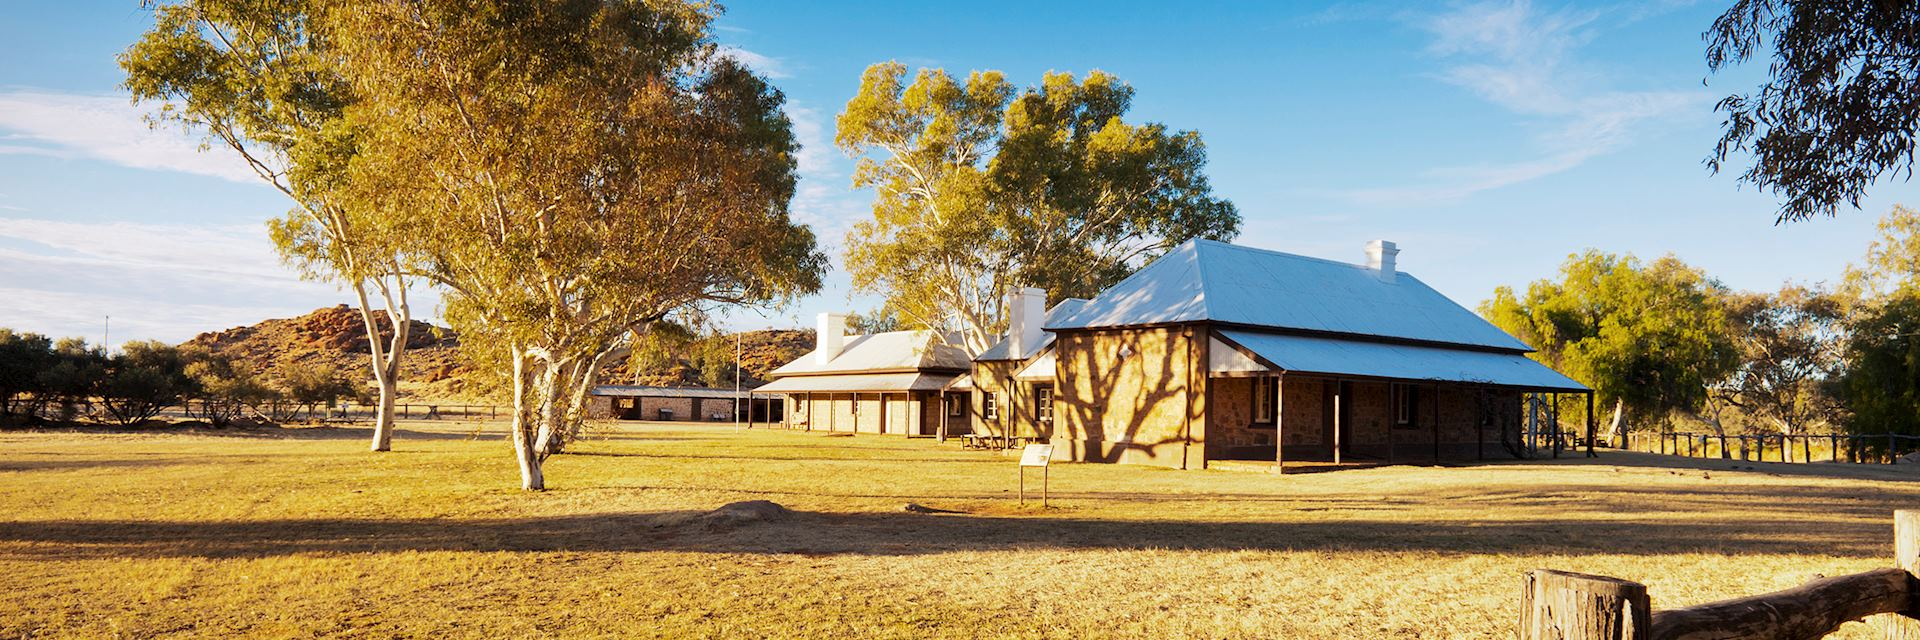 Telegraph station, Alice Springs